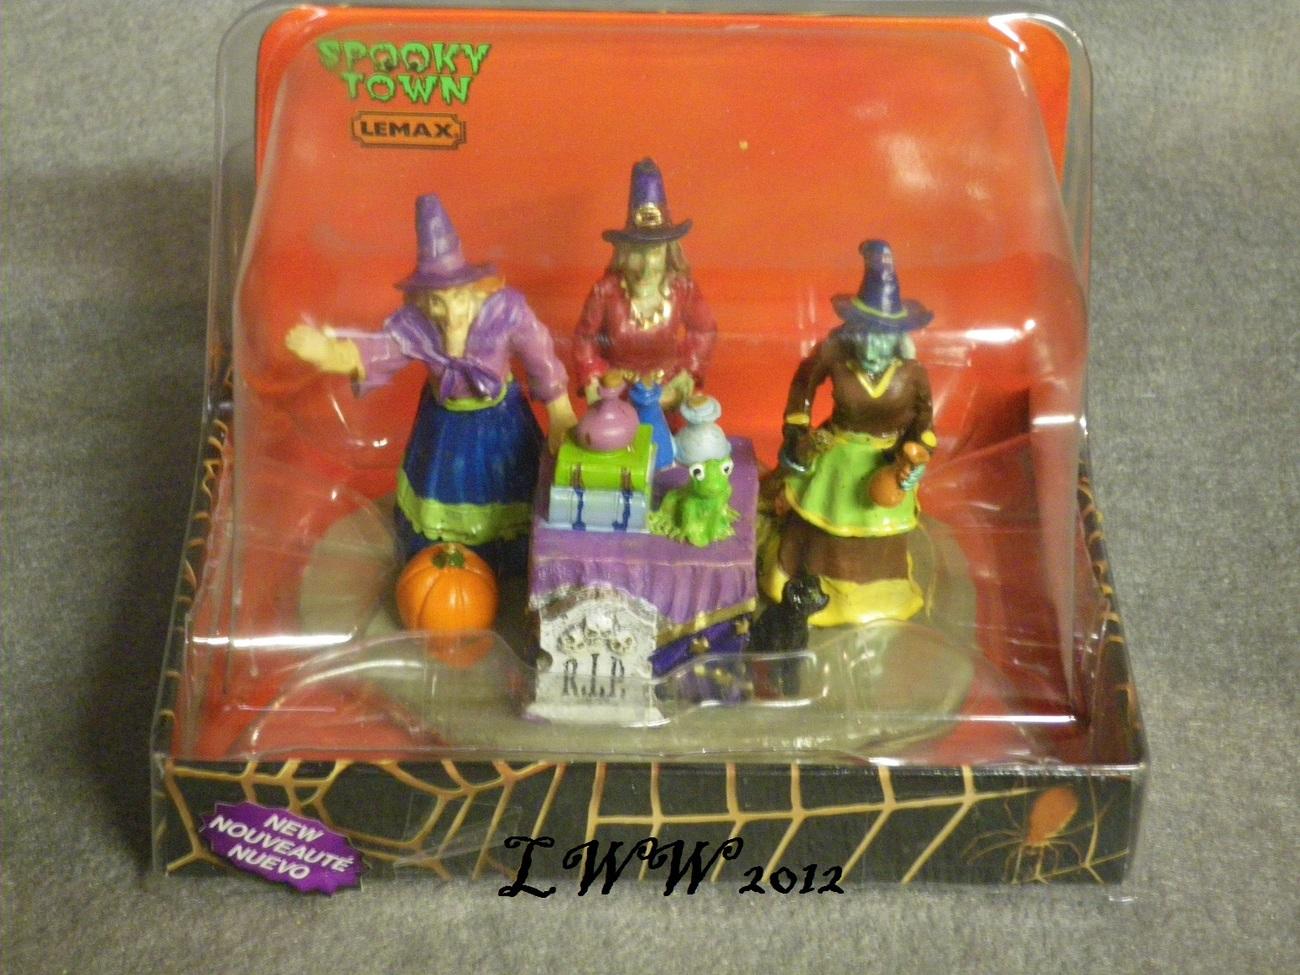 Lemax Spooky Town Potion Time Witch Graveyard Black Cat Table Accent in Package